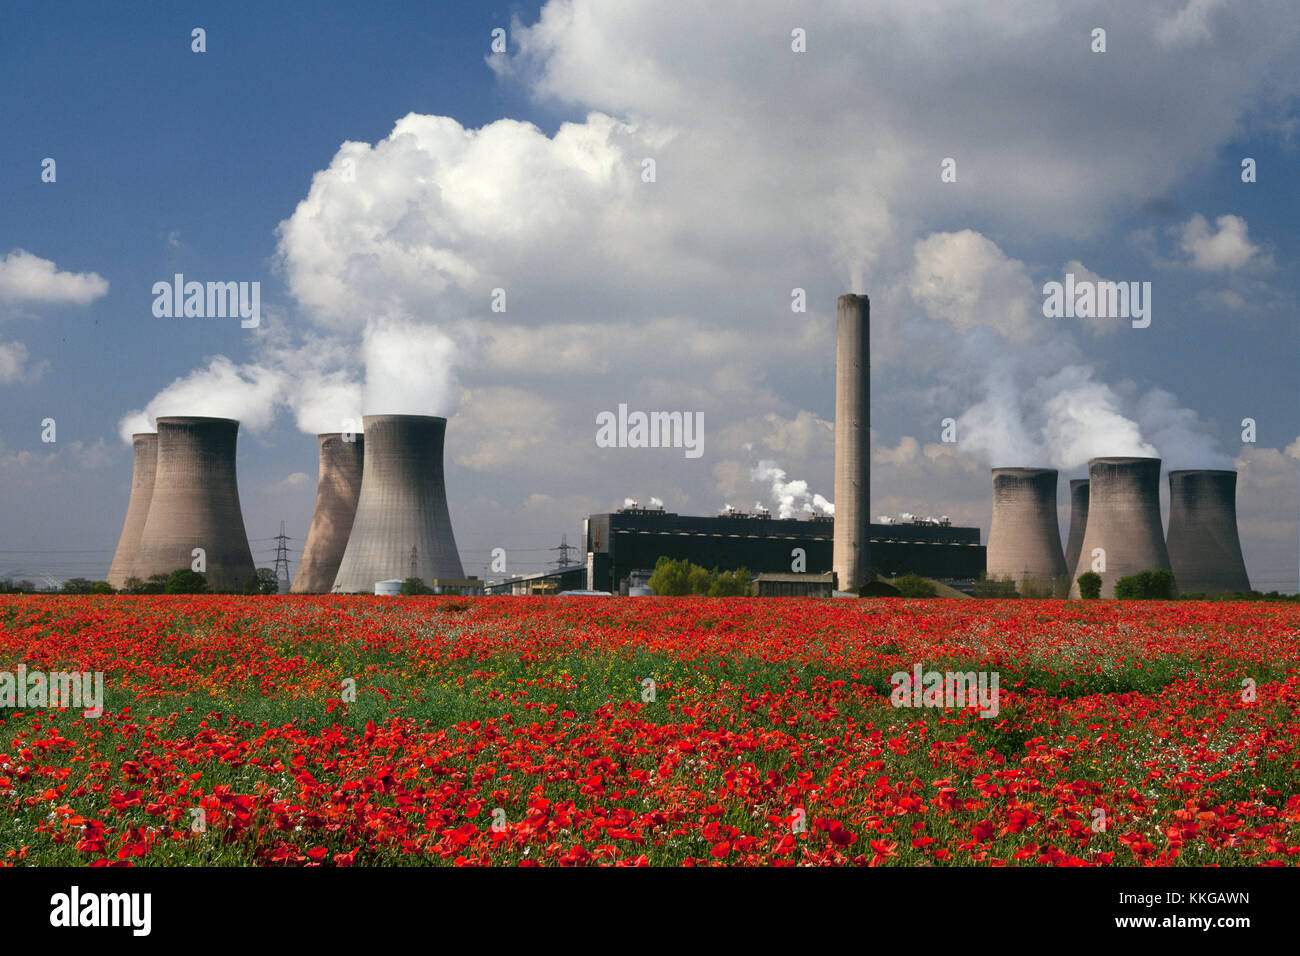 A coal-fired power plant in Cheshire in the United Kingdom. - Stock Image